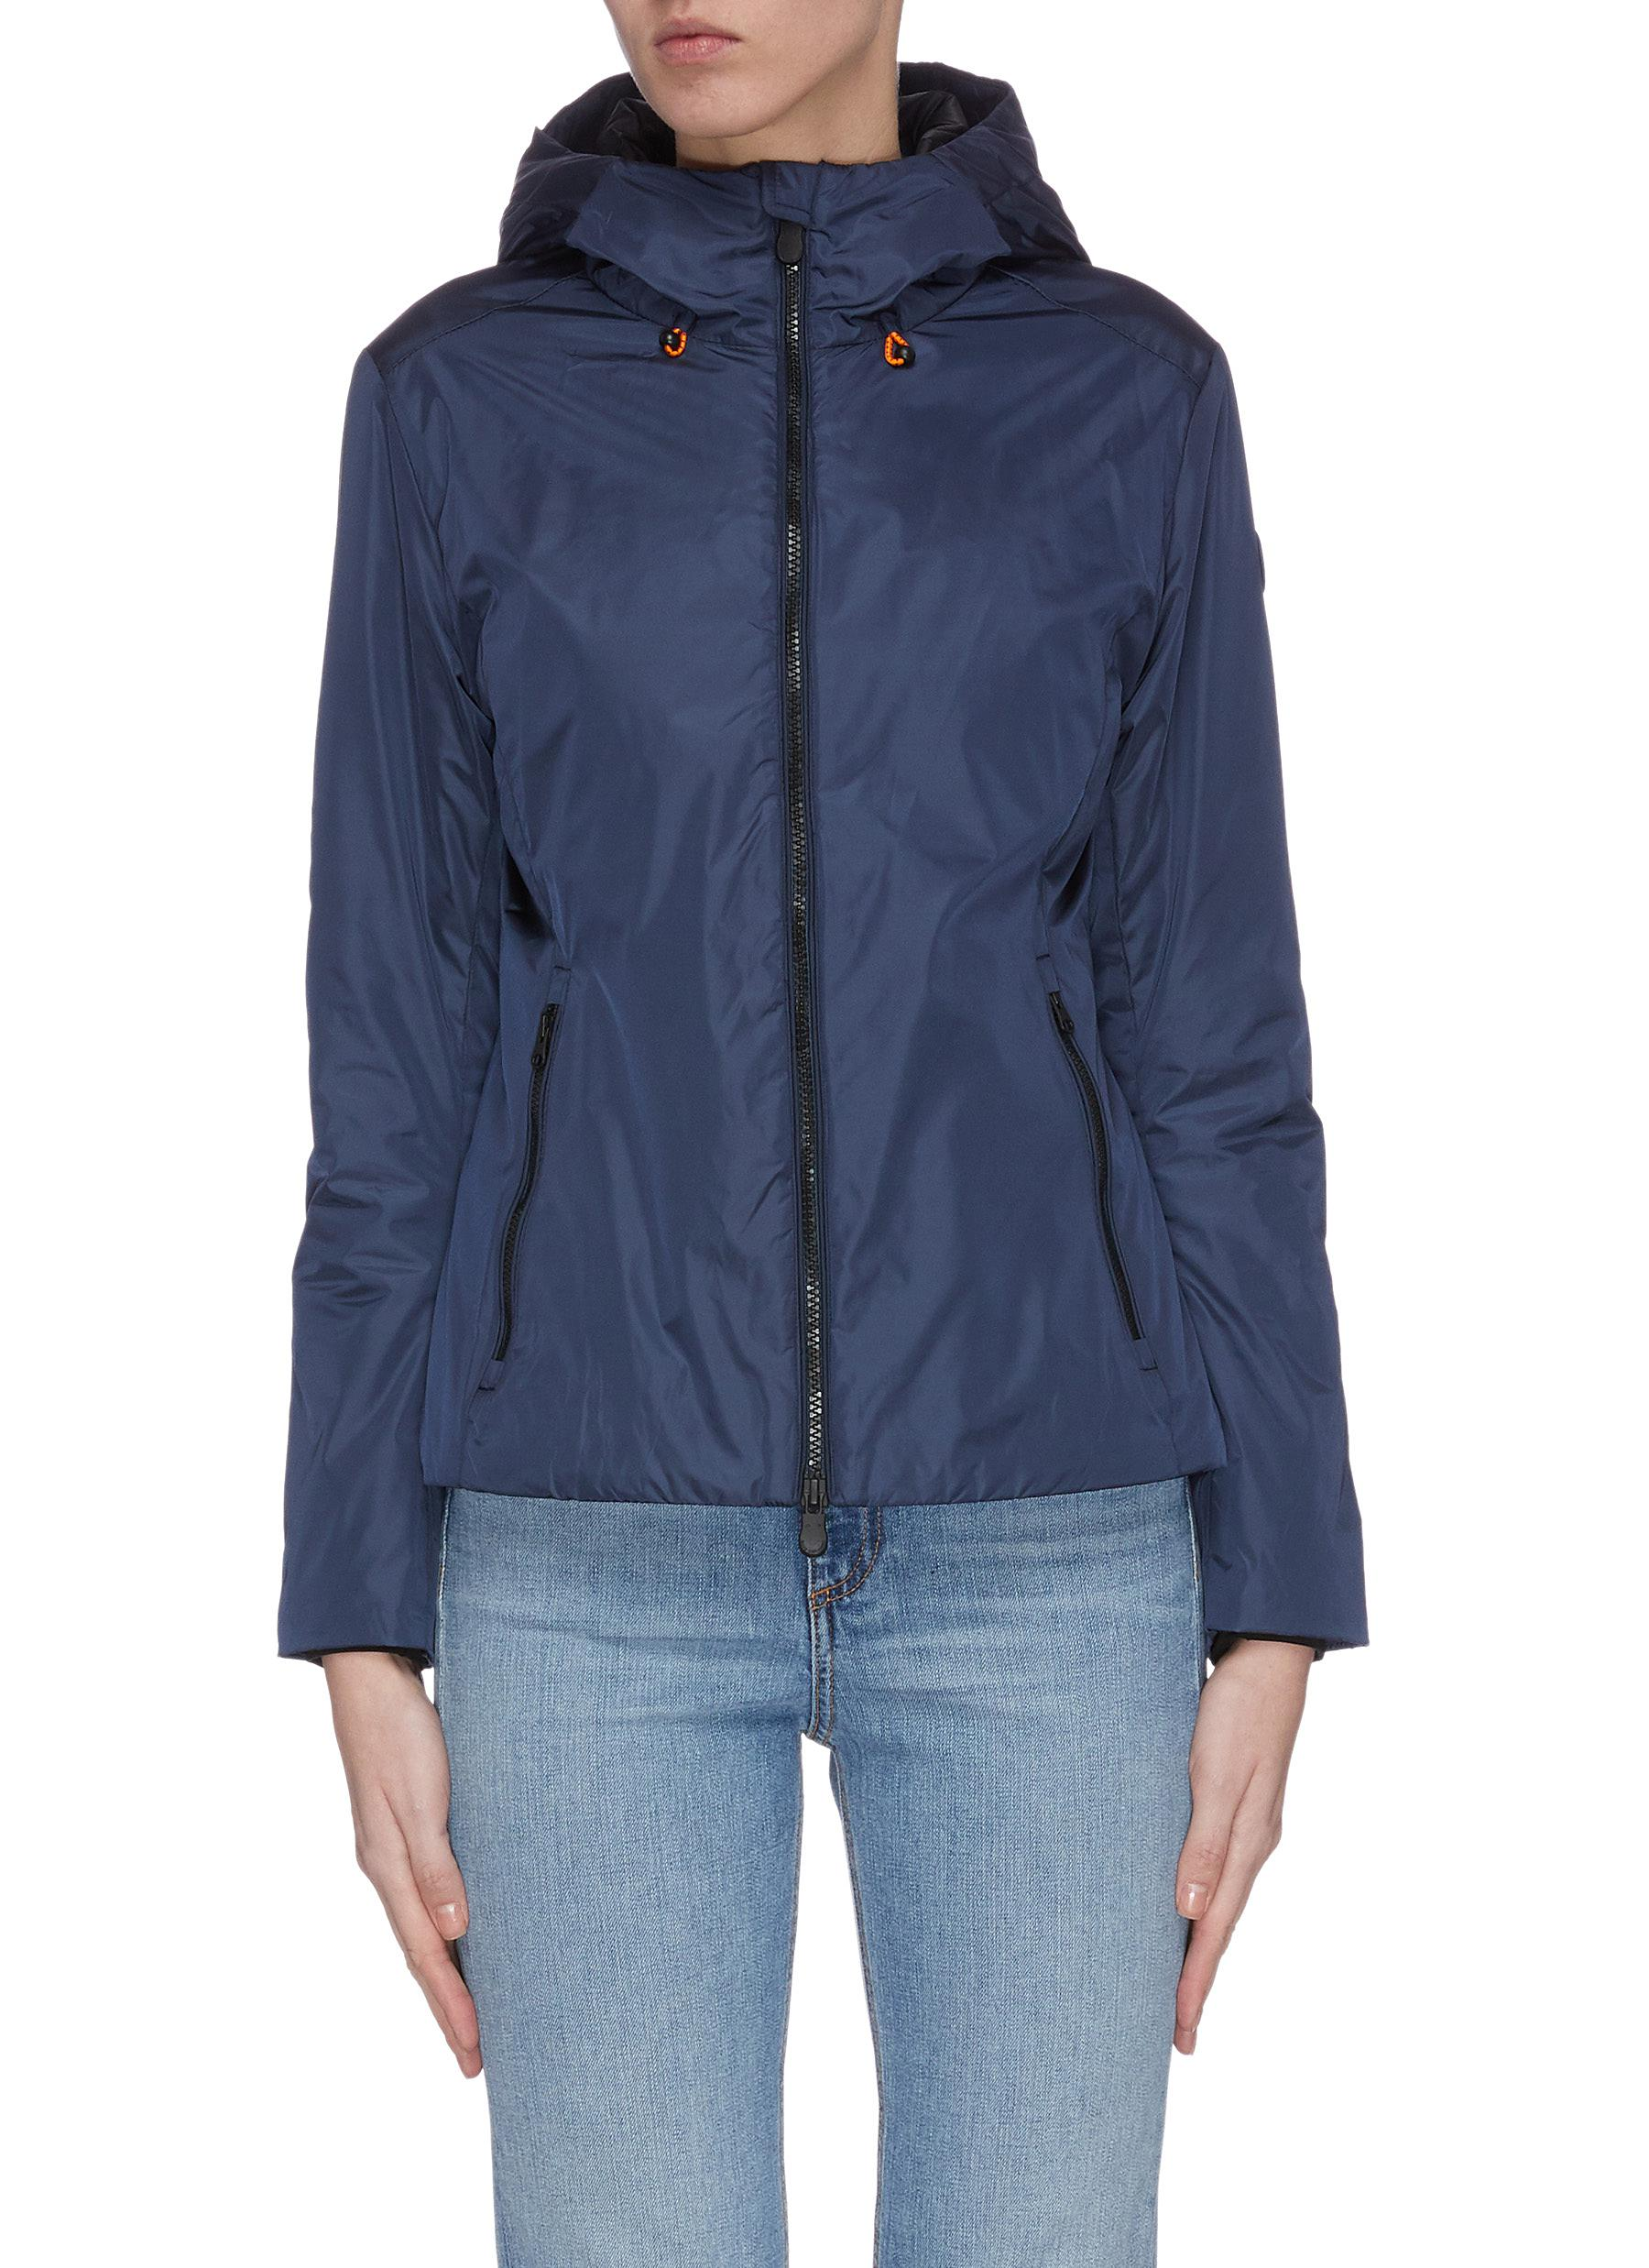 Buy Save The Duck Jackets 'Megax' water repellent jacket